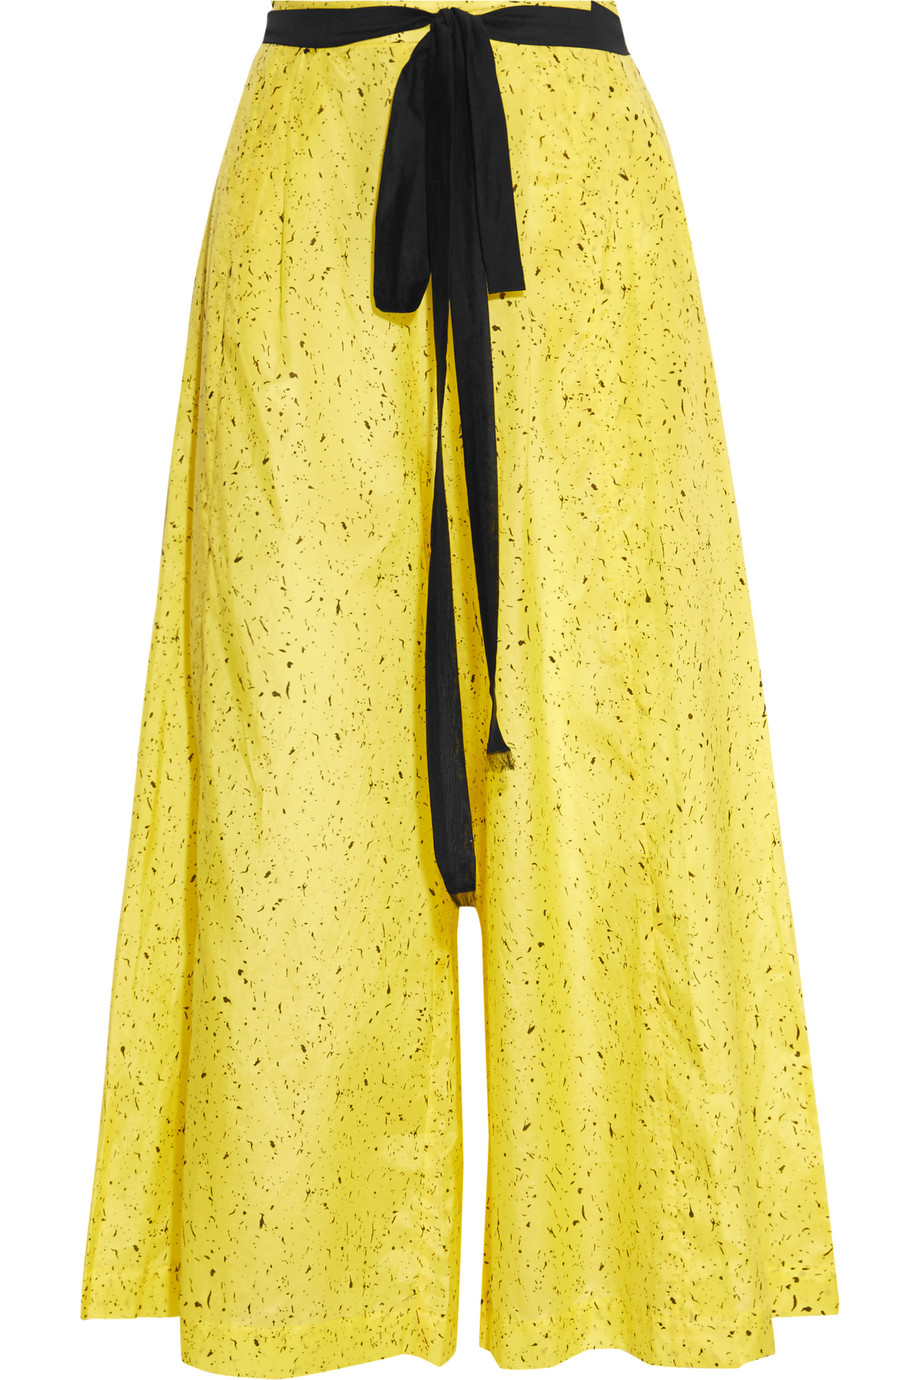 Proenza Schouler Printed Cotton and Silk-Blend Wide-Leg Pants, Pastel Yellow, Women's